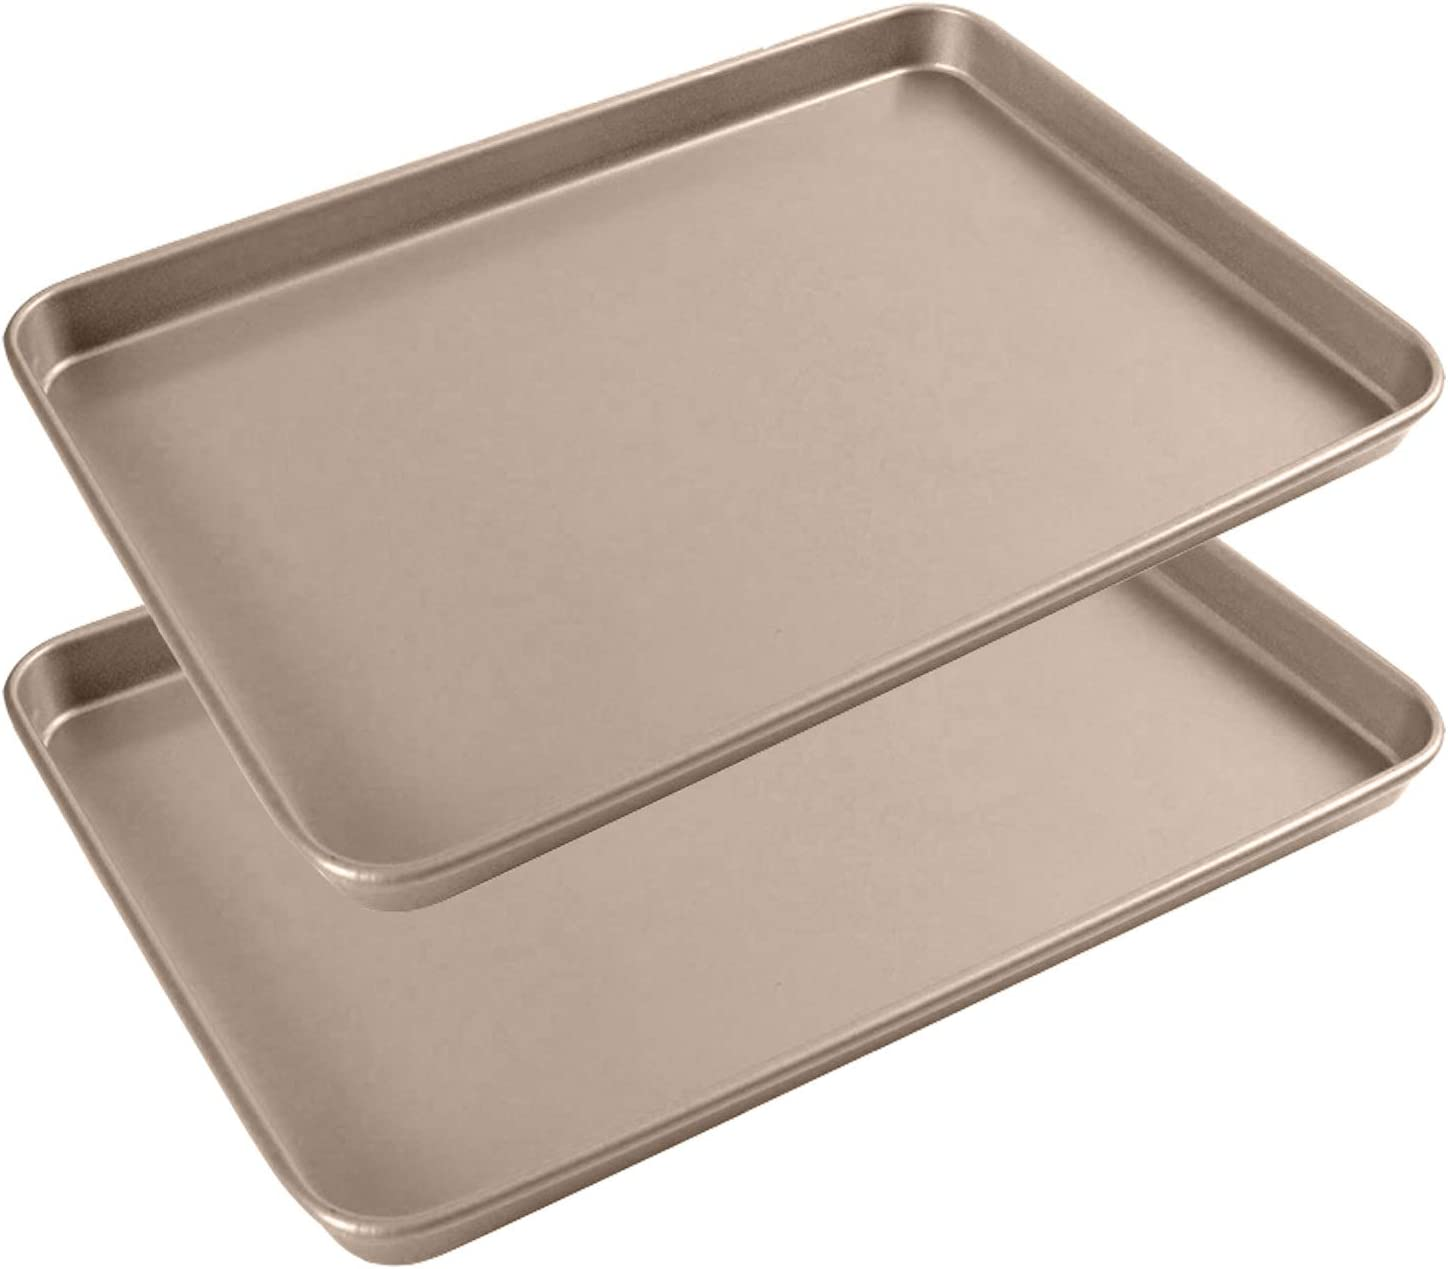 13 Inch Baking Sheets Pan Set of 2, Shinsin Nonstick Pans for Baking, Heavy Gauge Steel Cookie Sheet Sets w/Rimmed Border, 1-inch Deep Professional Reusable Baking Trays for Toaster Oven Replacement